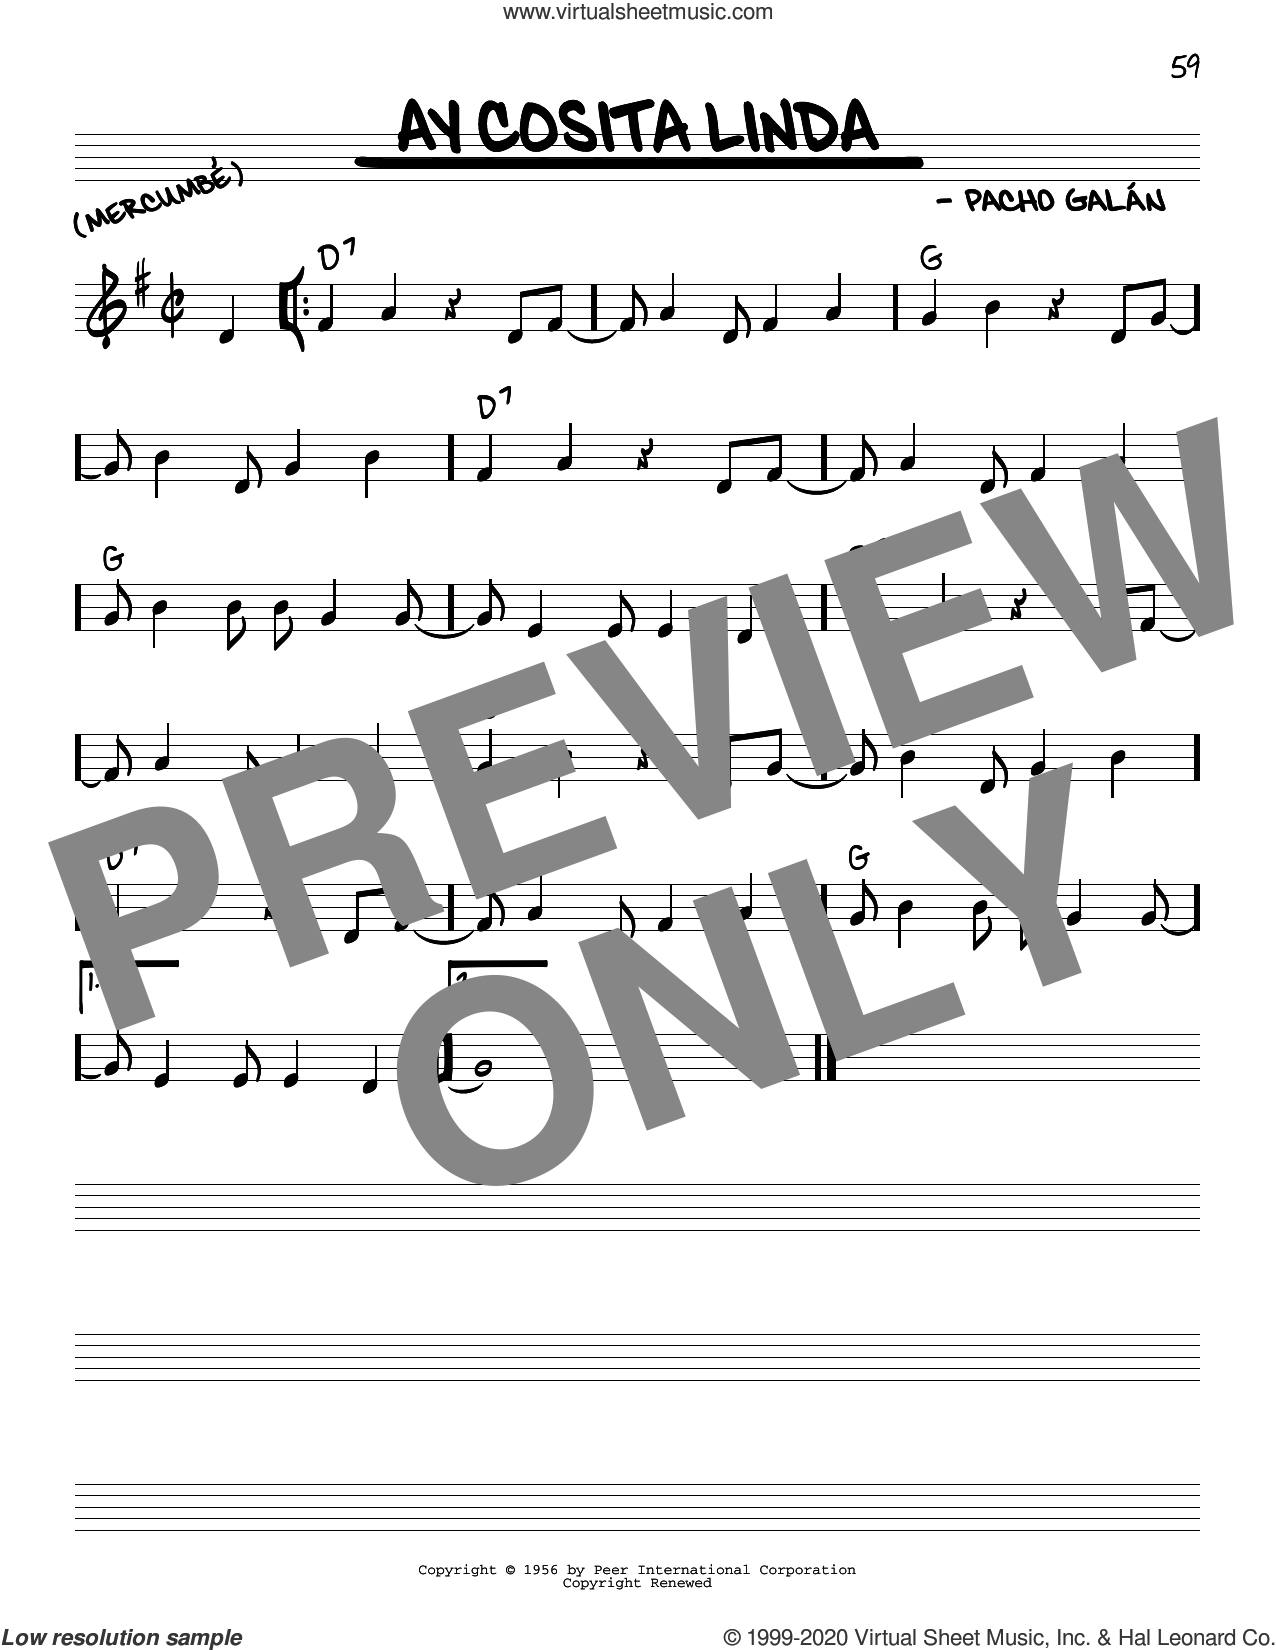 Ay Cosita Linda sheet music for voice and other instruments (real book) by Pacho Galan, intermediate skill level